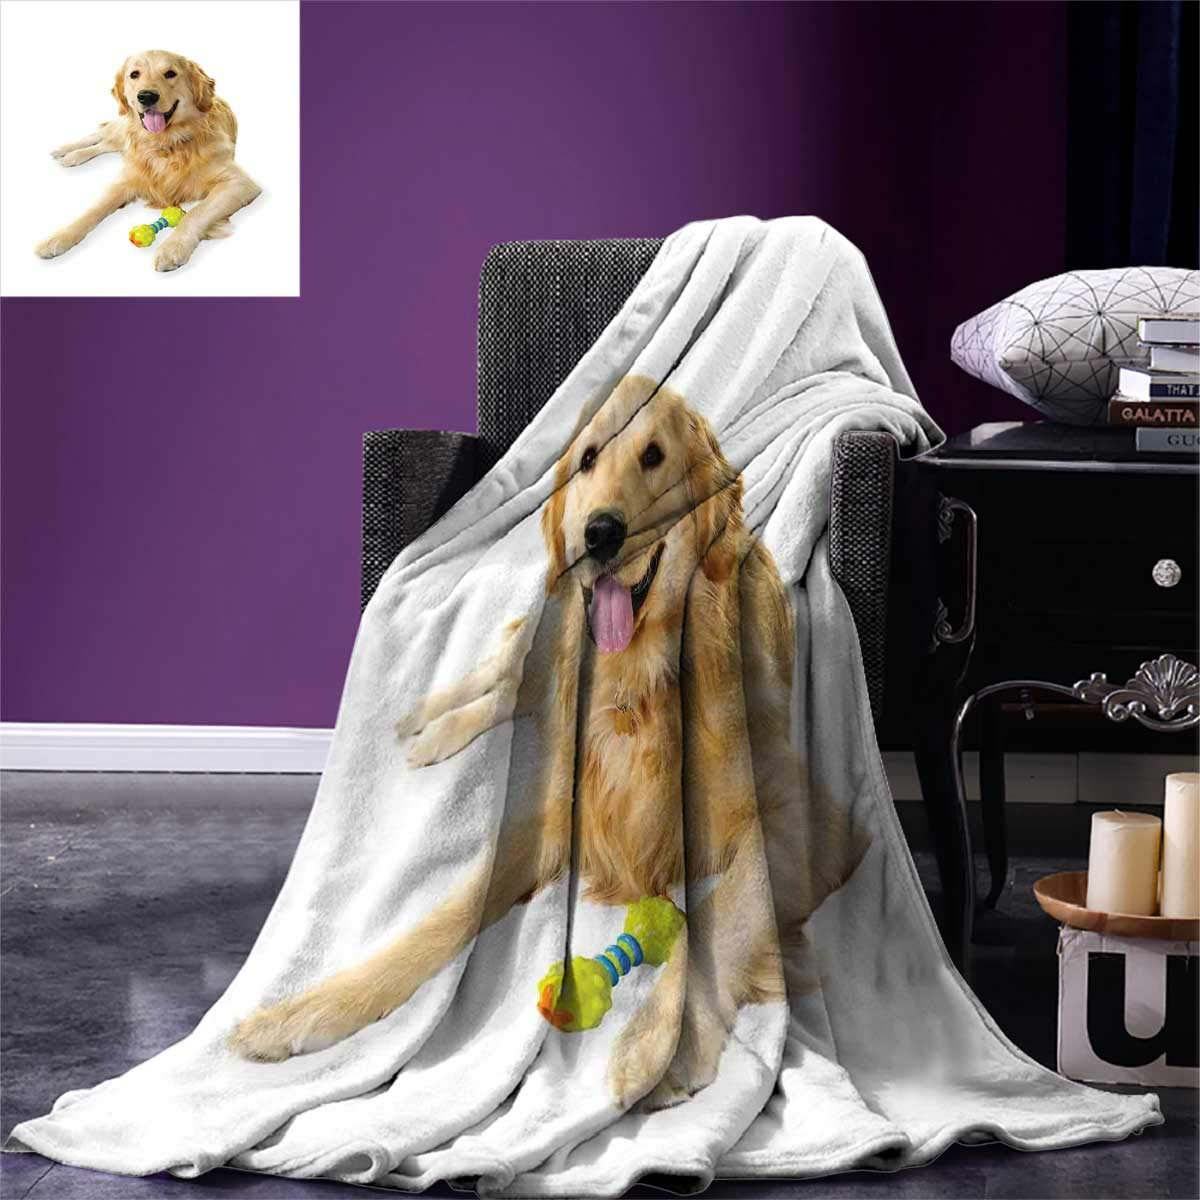 color02 60\ color02 60\ golden Retriever,Park Blanket,Pet Dog Laying Down with Toy Friendly Domestic Puppy Playful Companion,All Weather Blanket,Multicolor,Size:60 x36